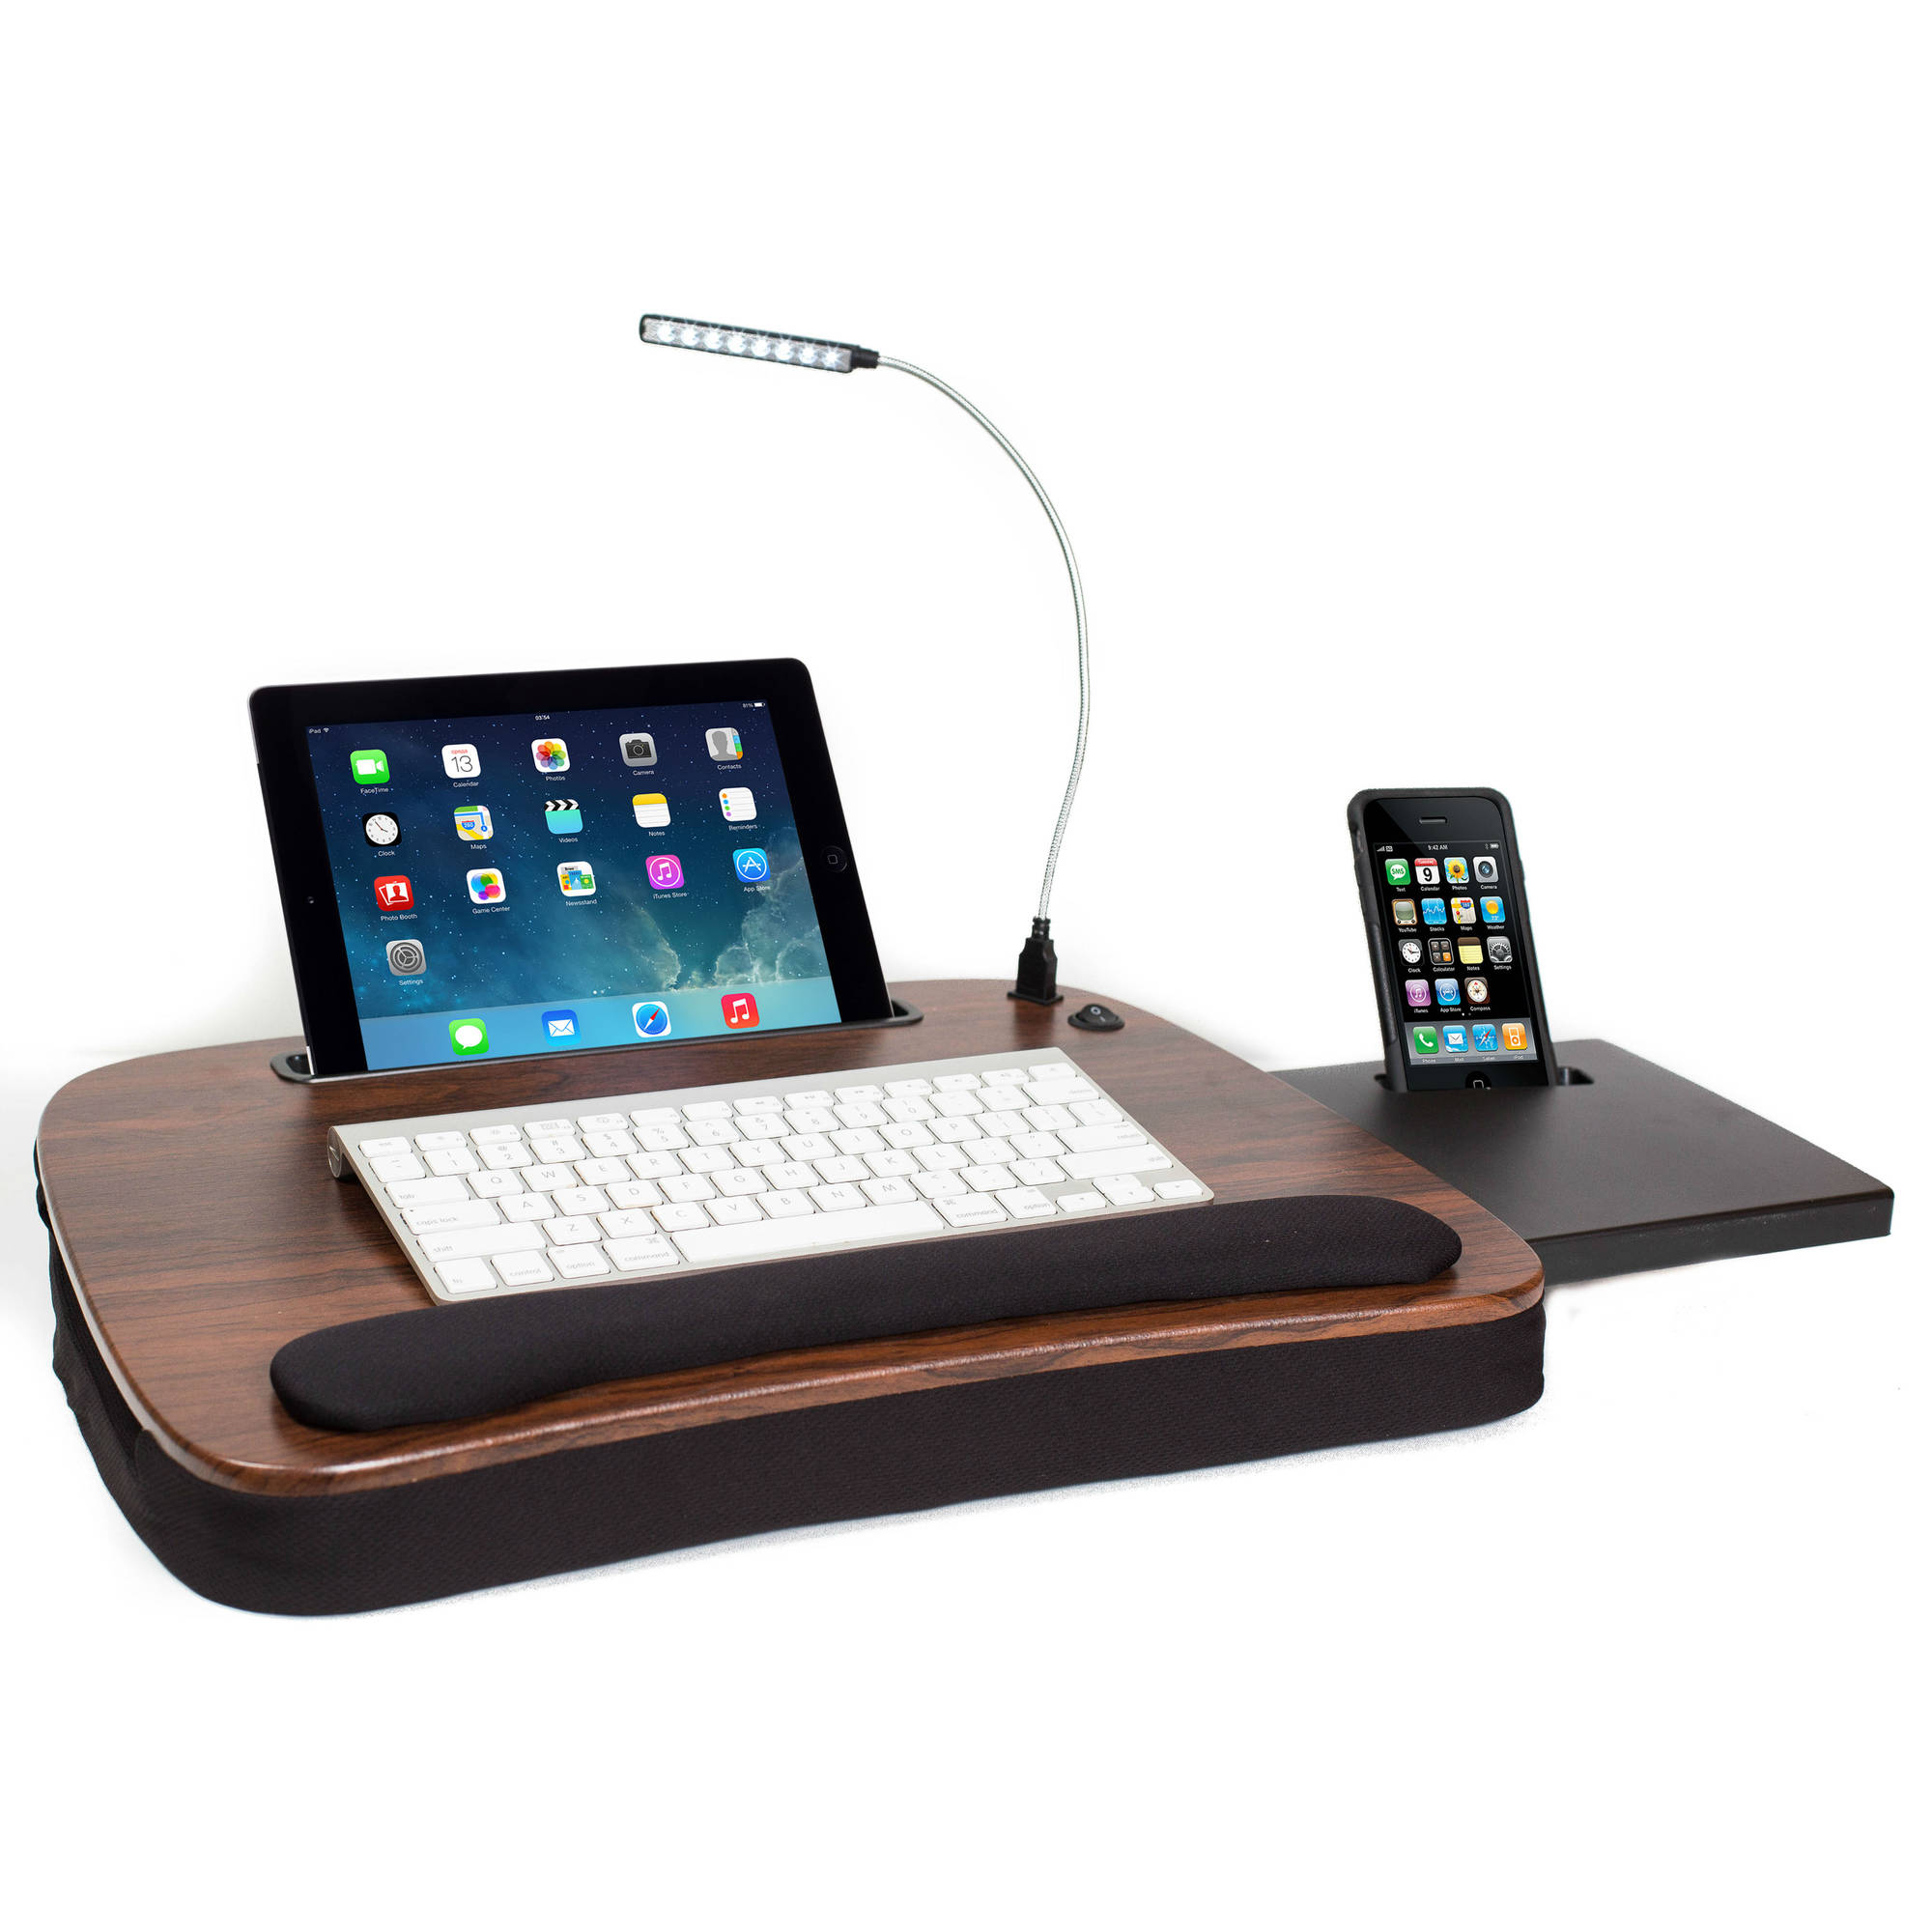 Sofia+Sam Multi Tasking Memory Foam Lap Desk, Wood Top with USB Light